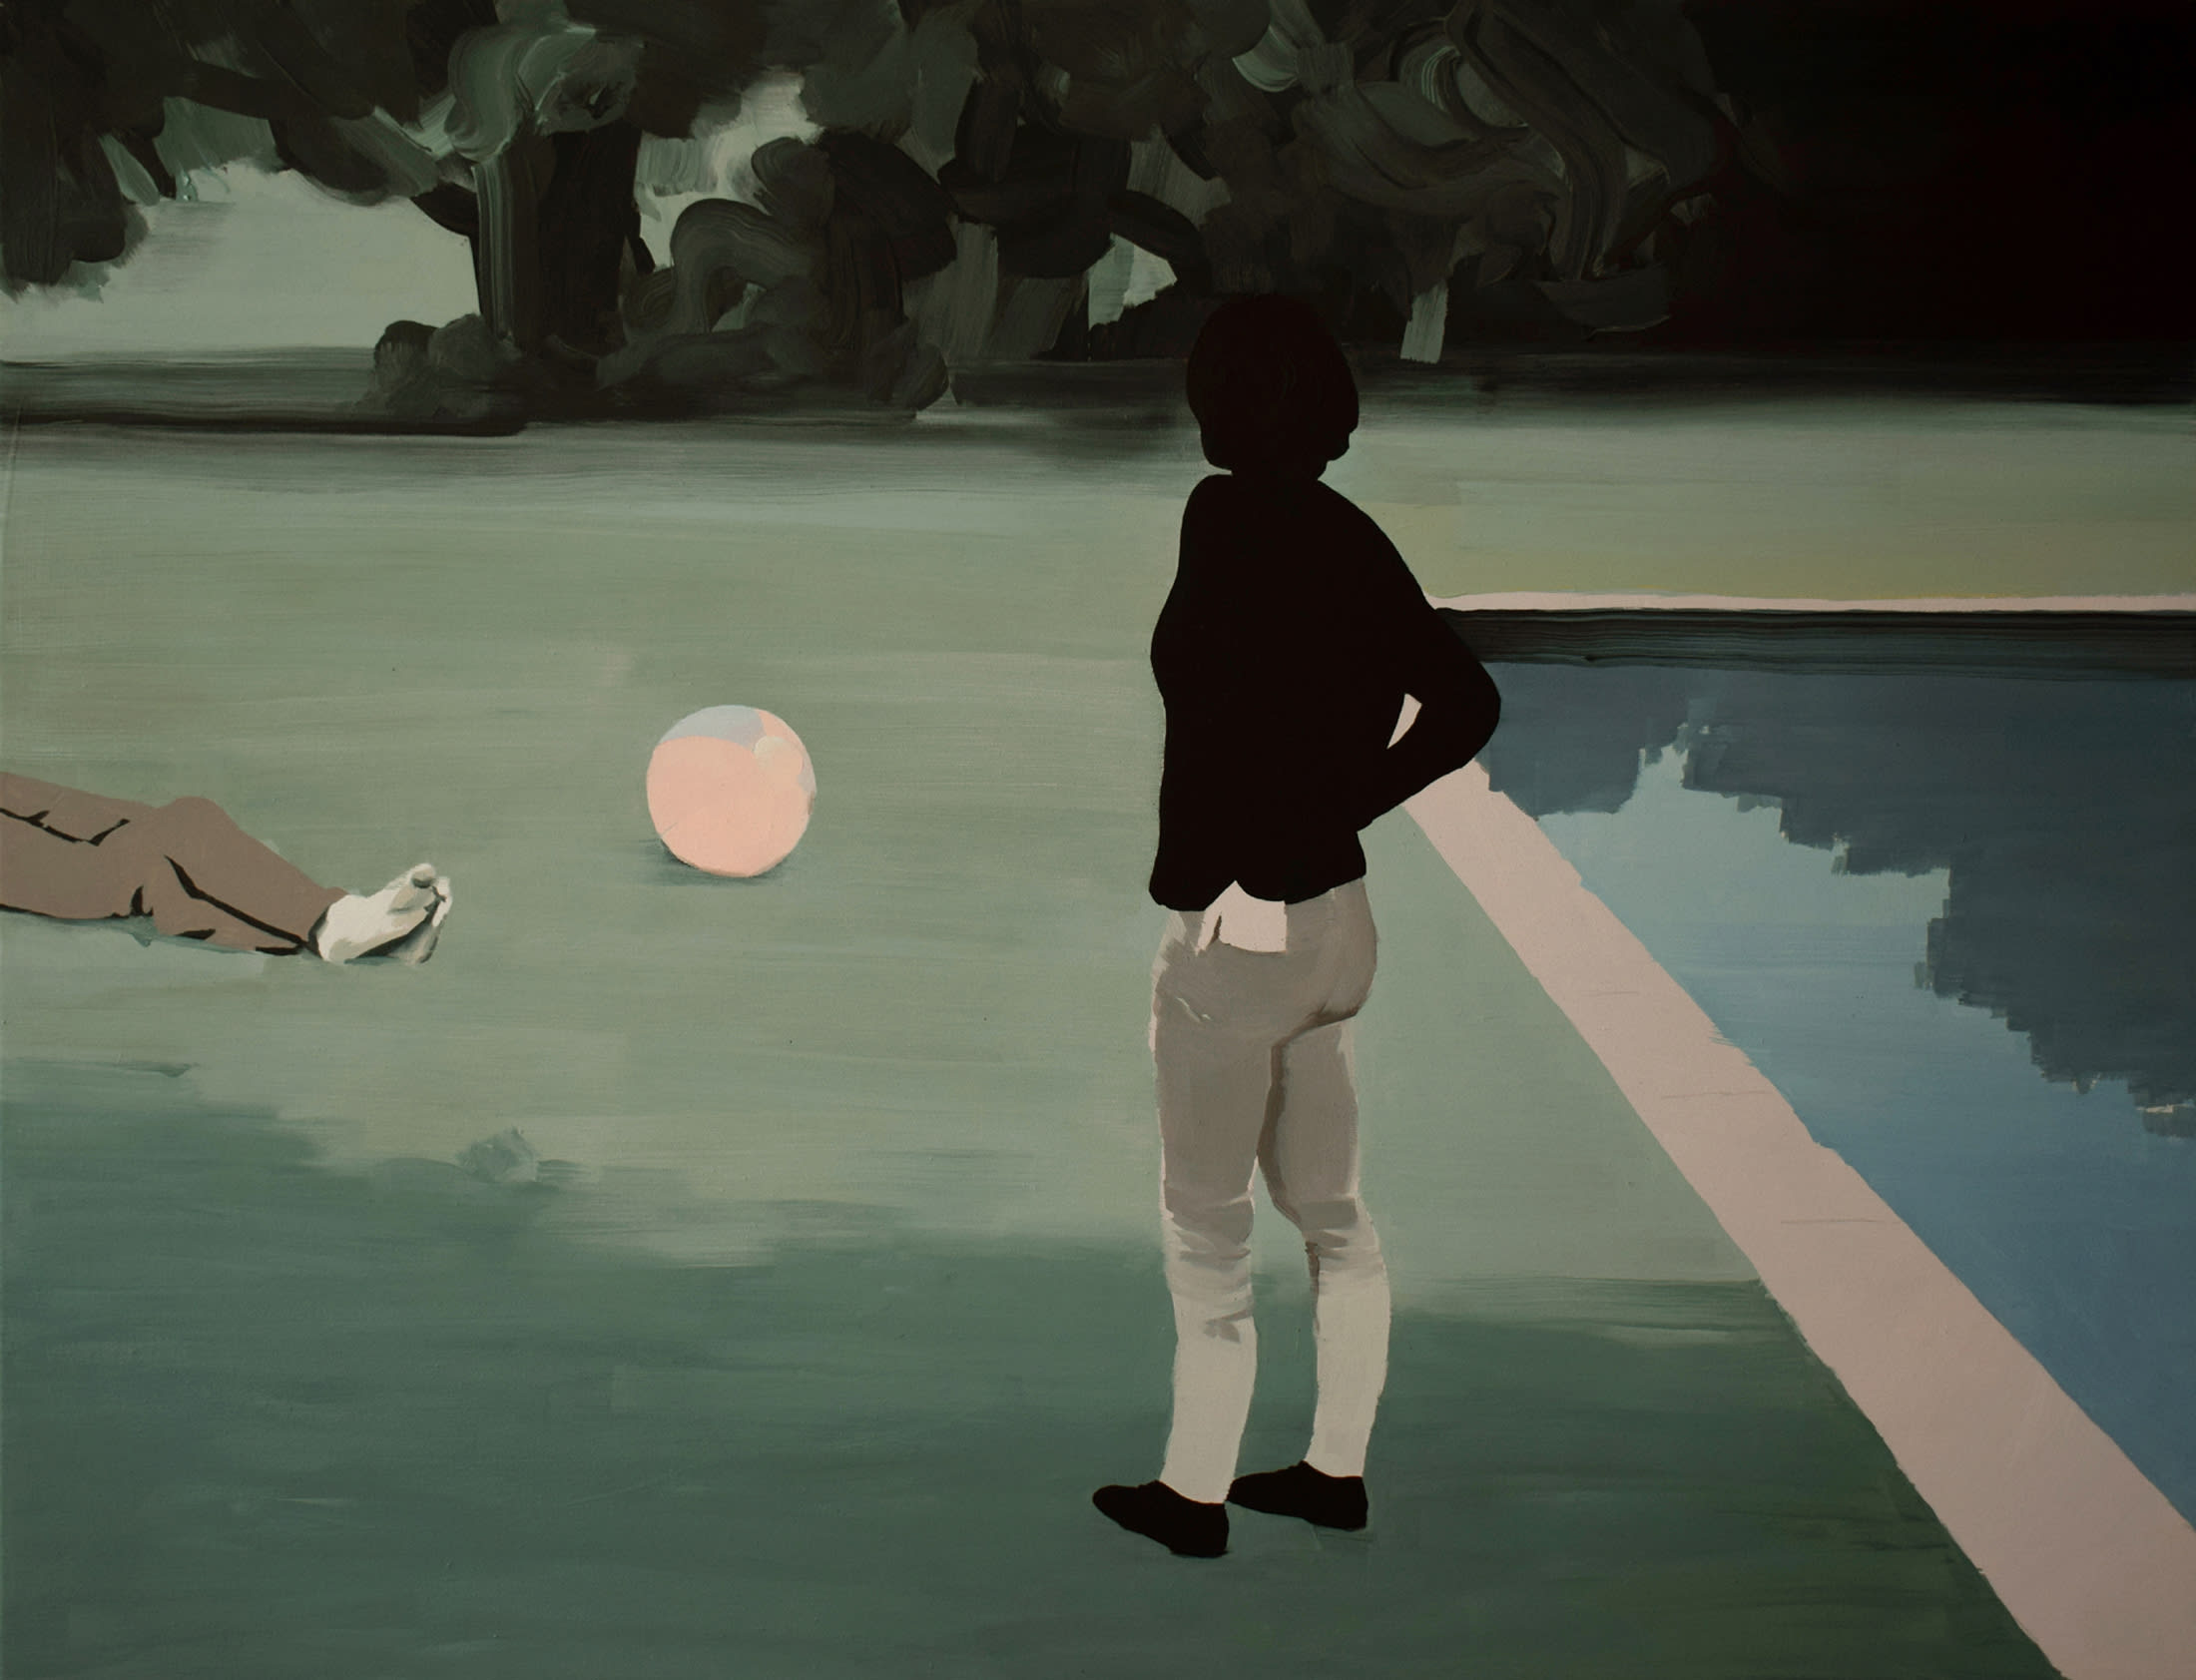 """<span class=""""link fancybox-details-link""""><a href=""""/artists/54-jarek-puczel/works/571-jarek-puczel-by-the-pool/"""">View Detail Page</a></span><div class=""""artist""""><strong>Jarek Puczel</strong></div> <div class=""""title""""><em>By the Pool</em></div> <div class=""""medium"""">Oil on Canvas</div> <div class=""""dimensions"""">27.6 x 35.4 inches</div>"""